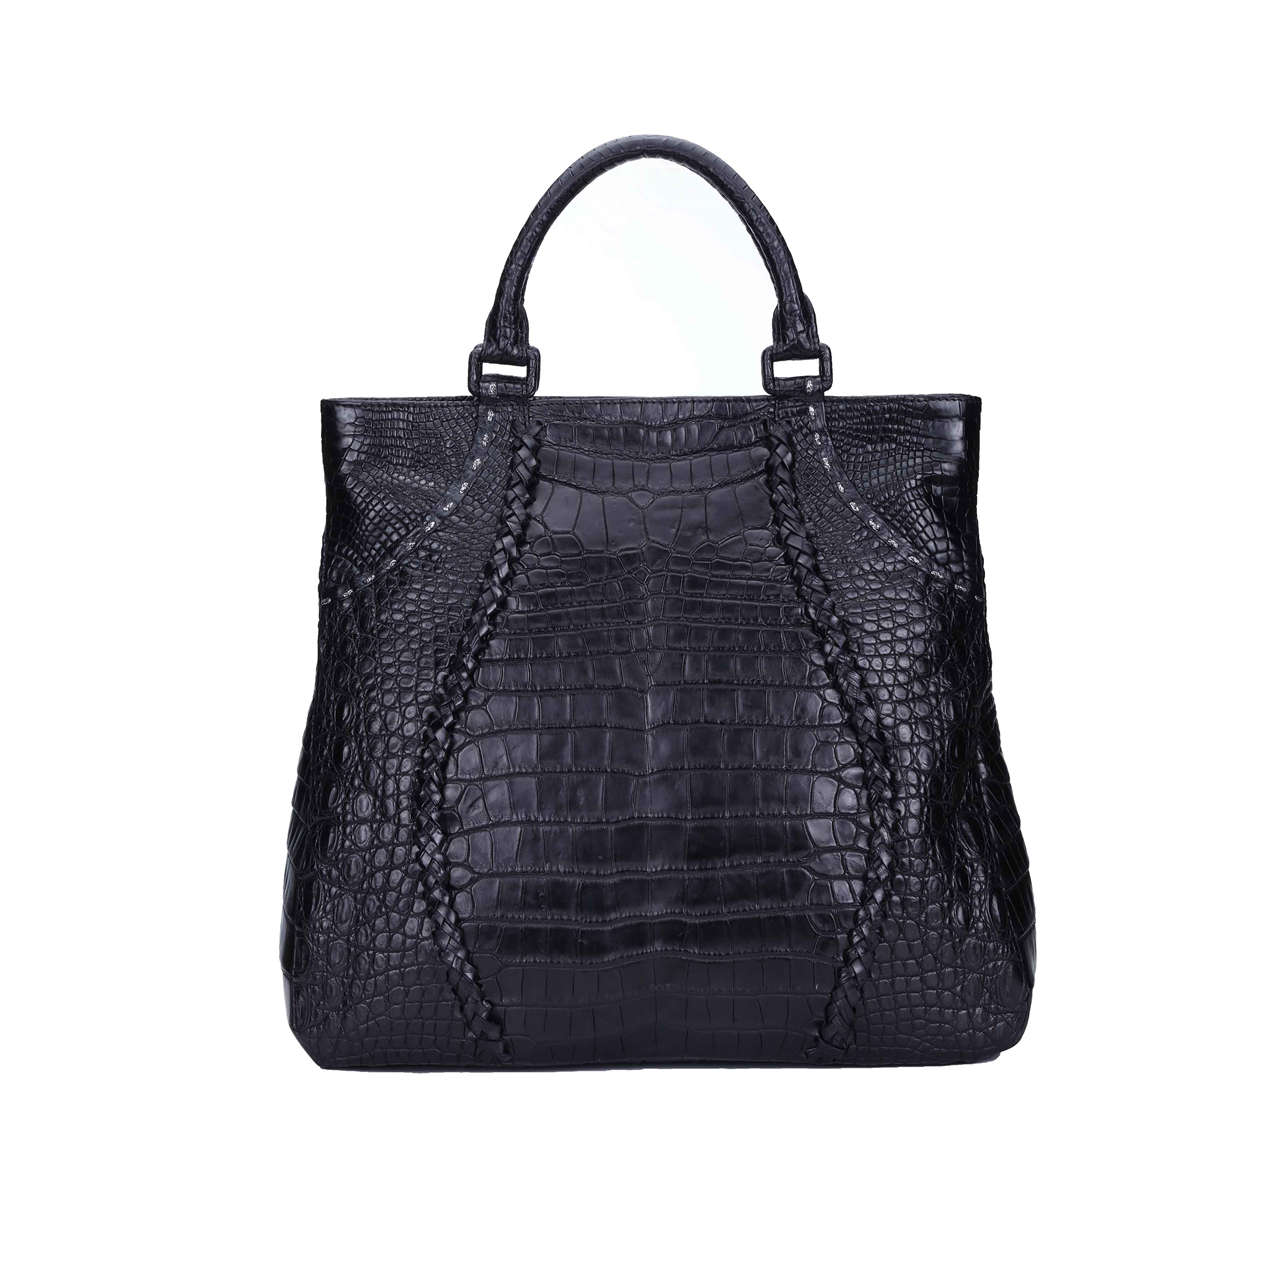 GF bags-Custom Latest Handbags Manufacturer, Cheap Handbags Online | Handbag